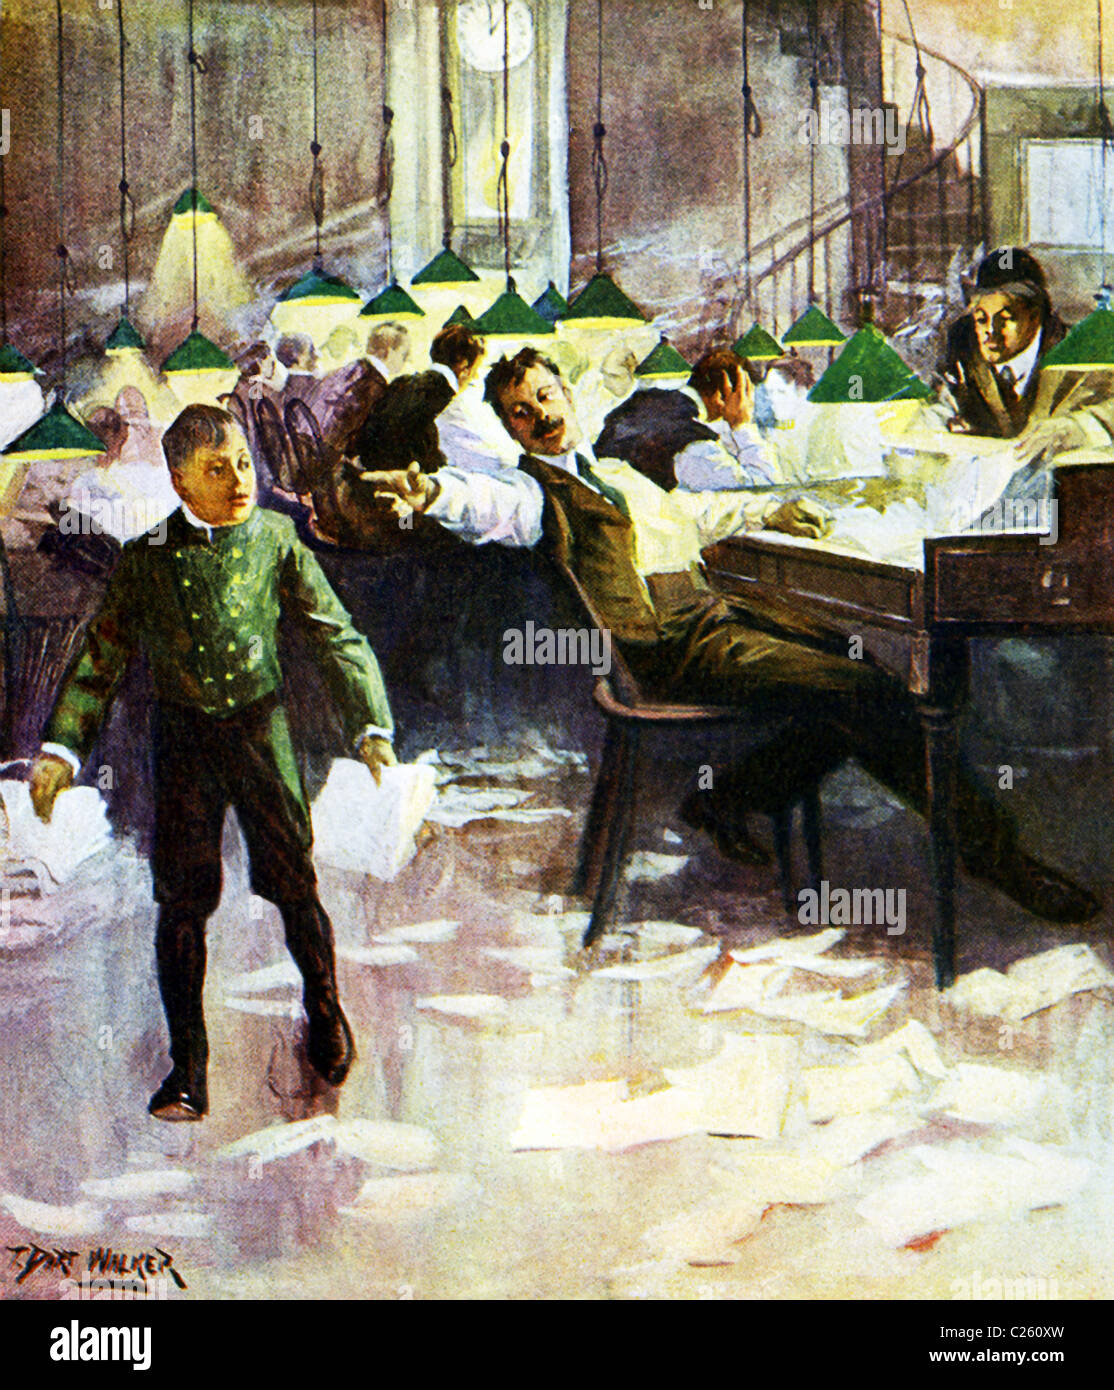 This 1903 illustration by T. Dart Walker shows the editorial room of a daily newspaper in the U.S. at the time. - Stock Image